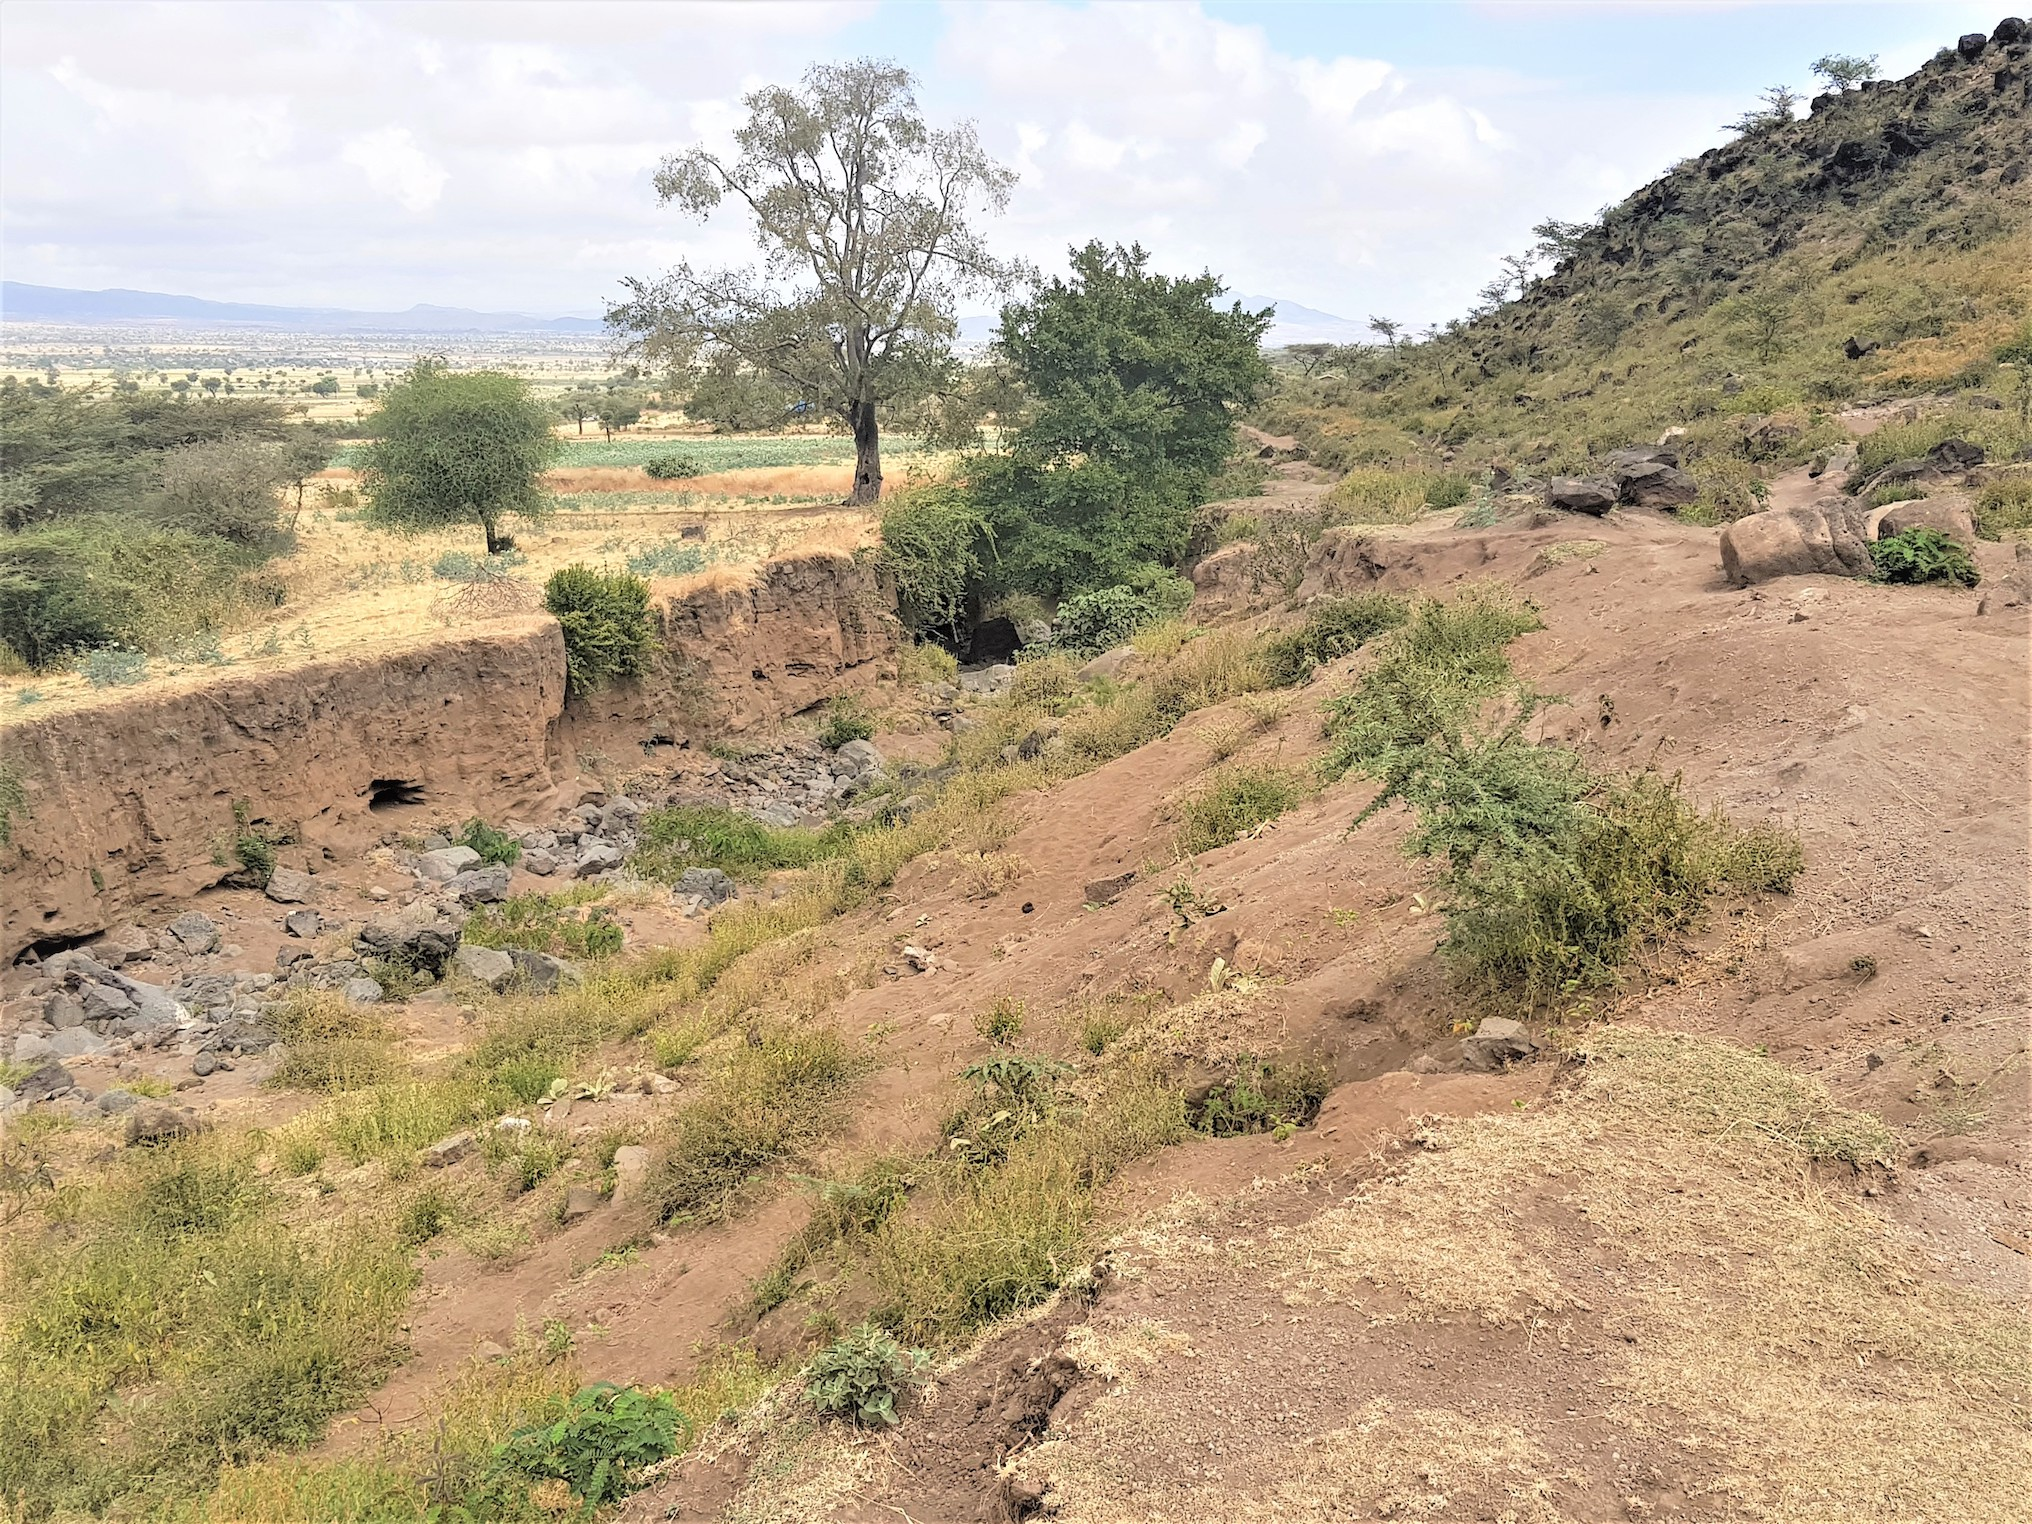 A gully forming in Boset District, Ethiopia. Photo: World Agroforestry/Endalkachew Woldemekel